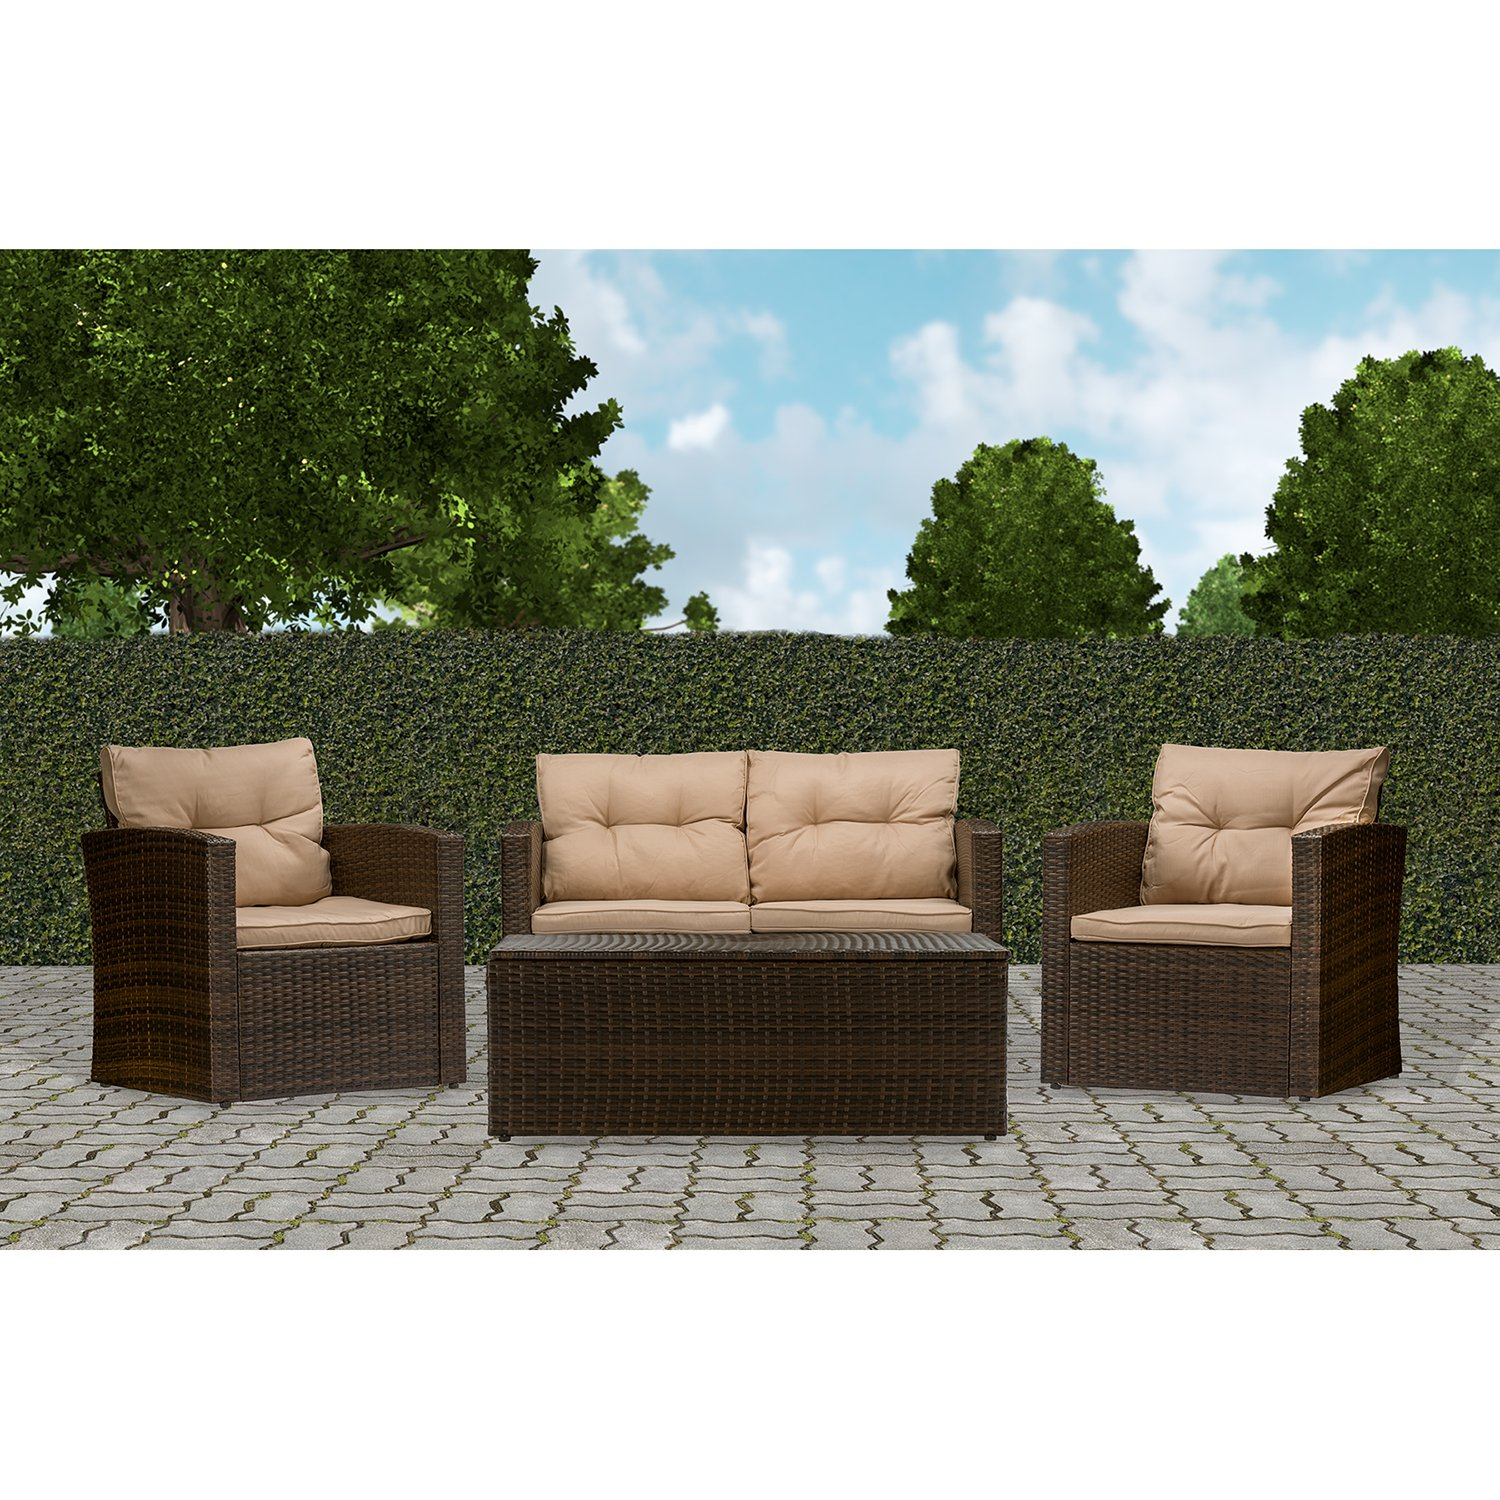 Baxton Studio Wholesale Interiors Imperia Modern and Contemporary PE Rattan 4 Piece Outdoor Loveseat